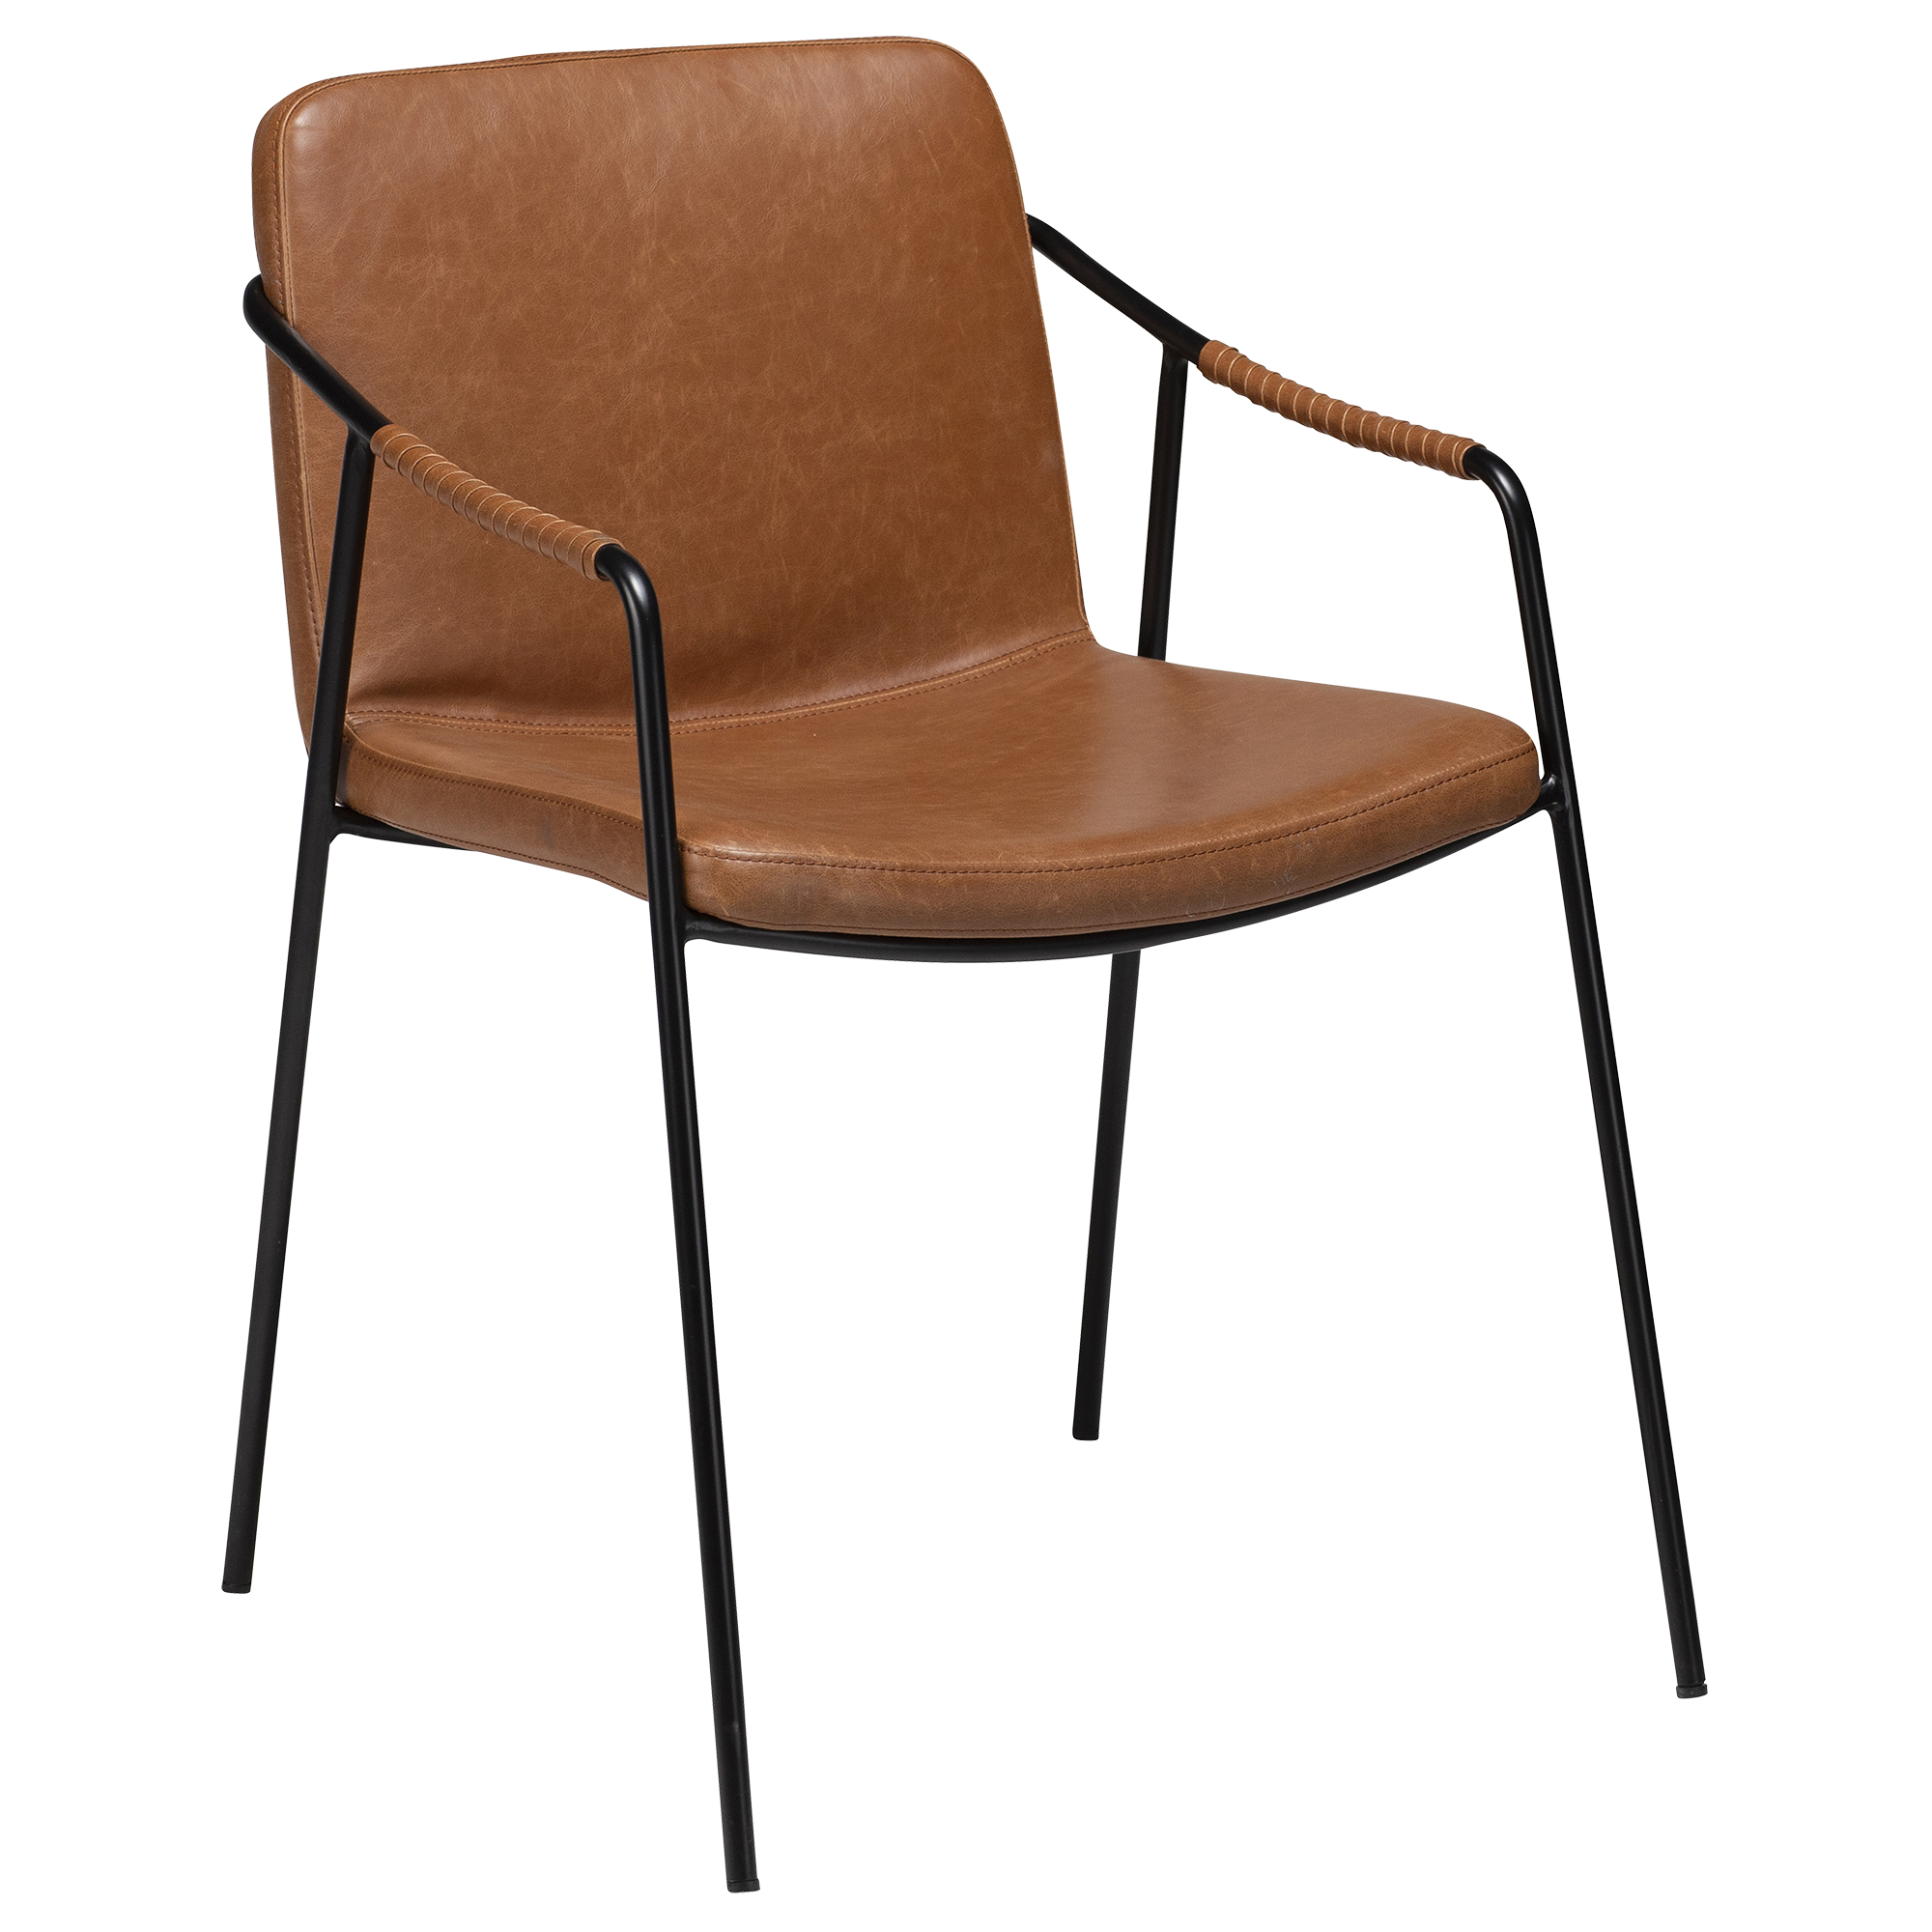 Picture of: Danish Design Chairs And Armchairs Scandinavian Chair Design